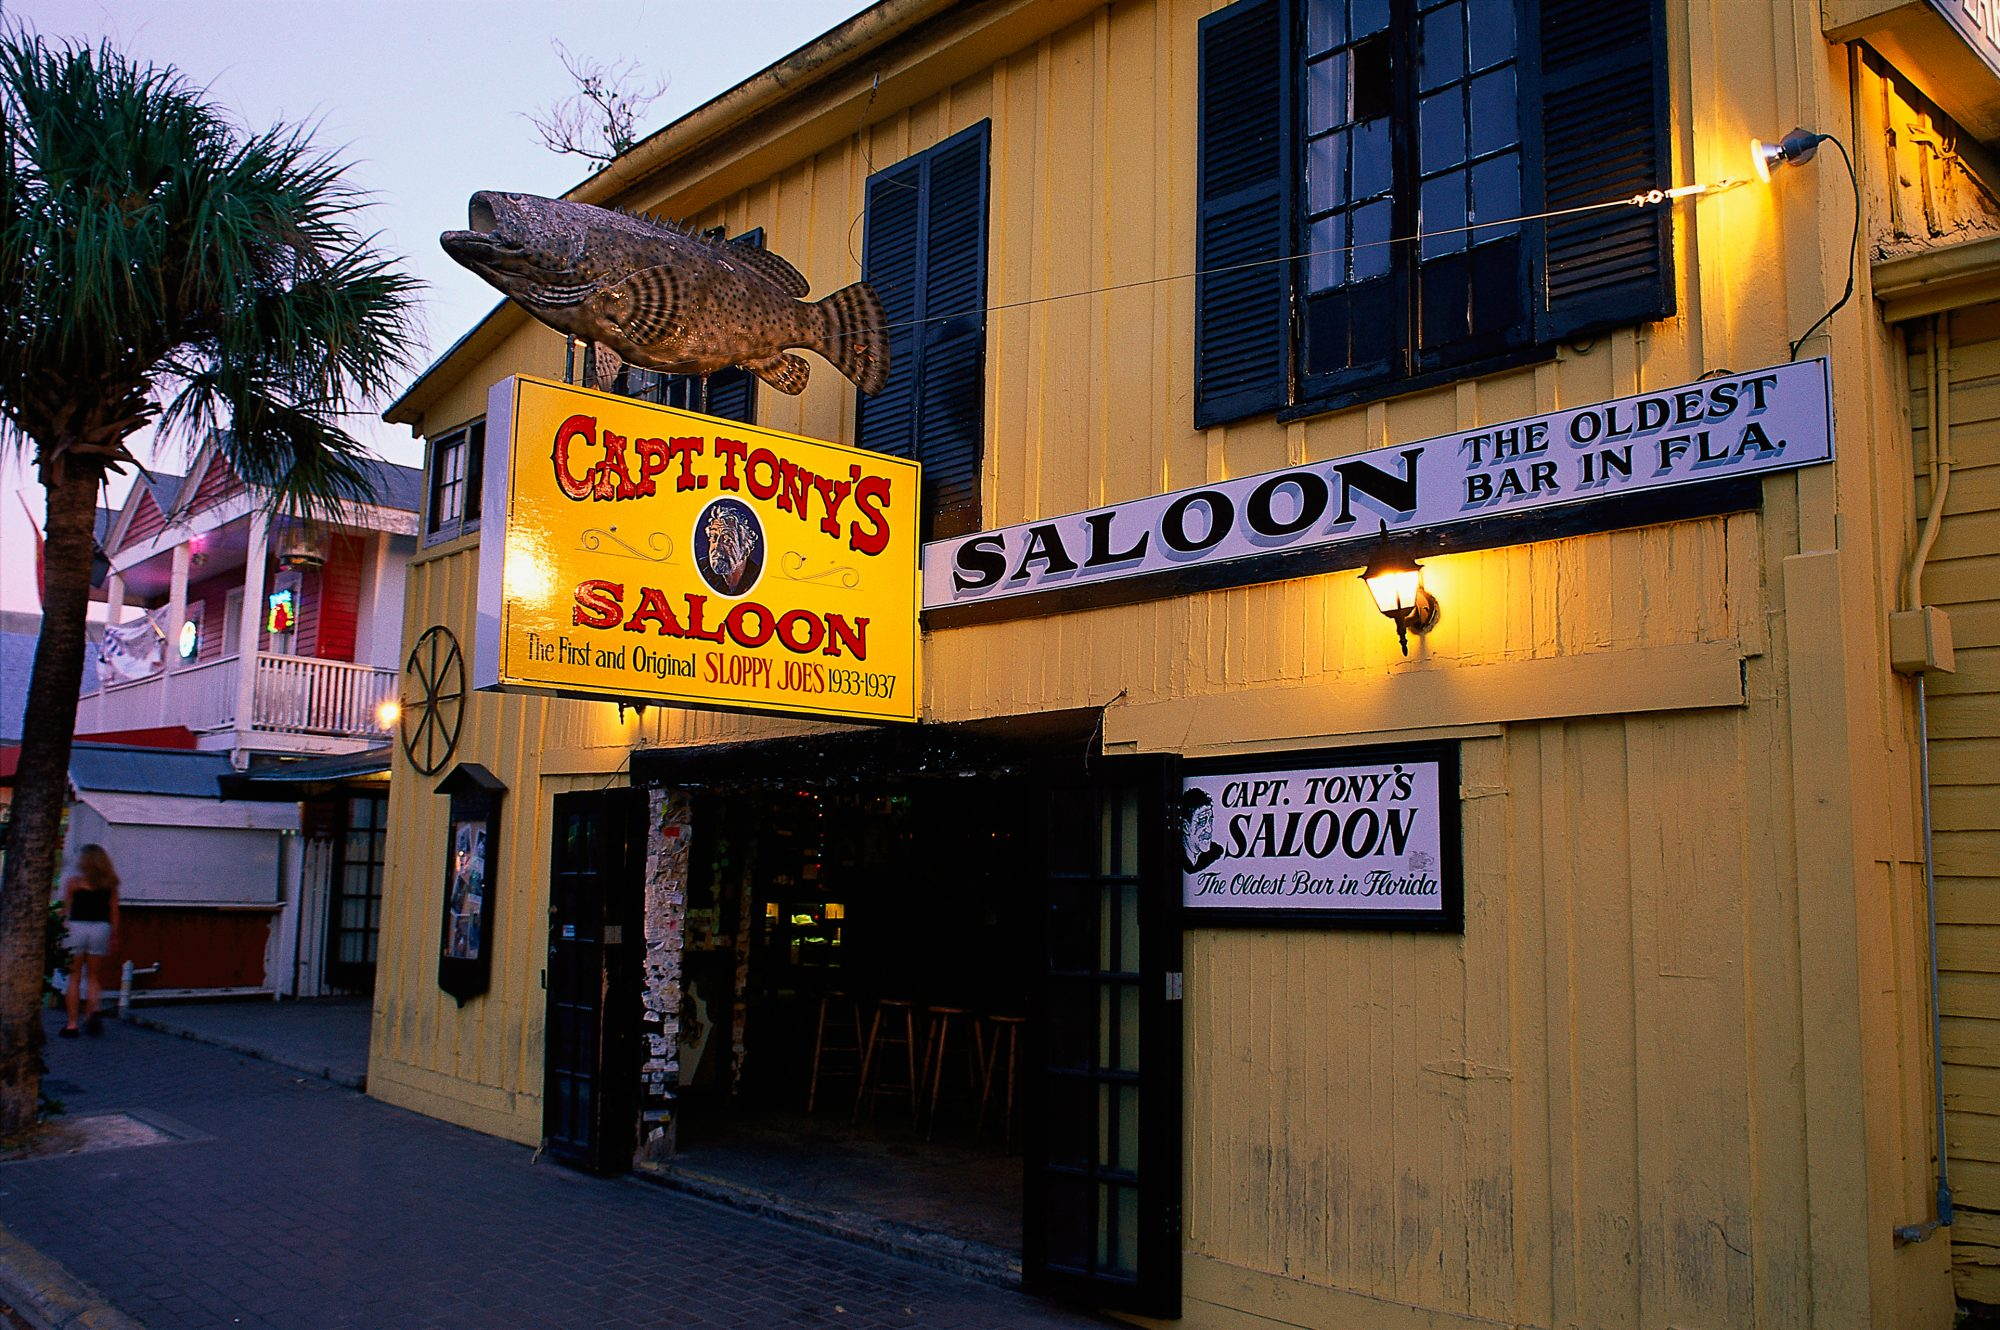 It's no secret that Key West is home to an impressive share of eclectic watering holes. There's no better place to start your bar hop than Captain Tony's Saloon. Originally opened in 1851 as an icehouse that doubled as a morgue, this old-school pub has attracted the likes of Ernest Hemingway, Tennessee Williams, Jimmy Buffett, and, of course, the legendary Captain Tony himself.